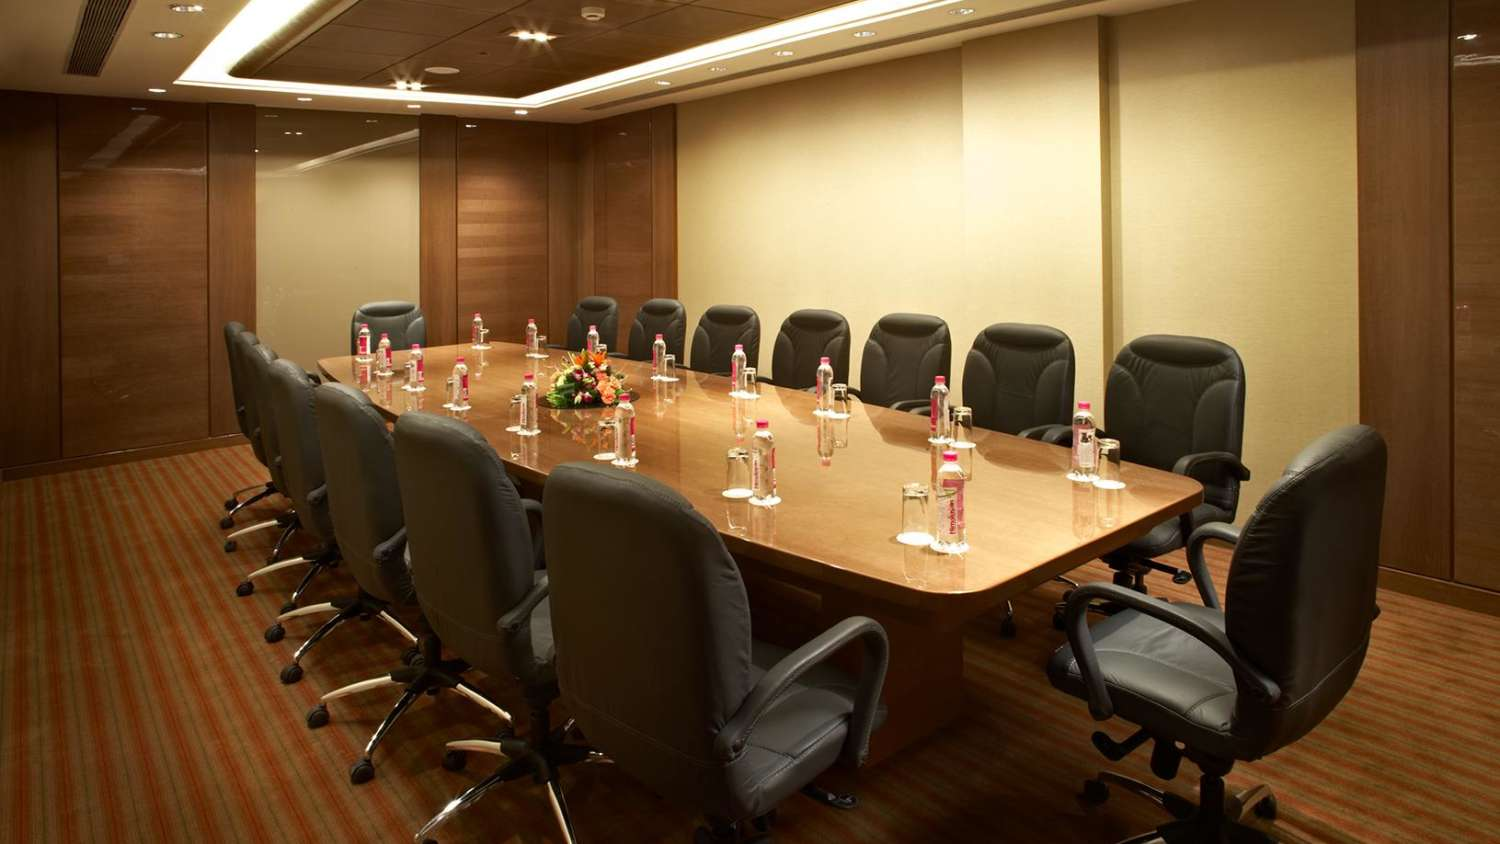 the luxurious and elegant business conference rooms. Book Now And Get Exciting Discounts! The Luxurious Elegant Business Conference Rooms